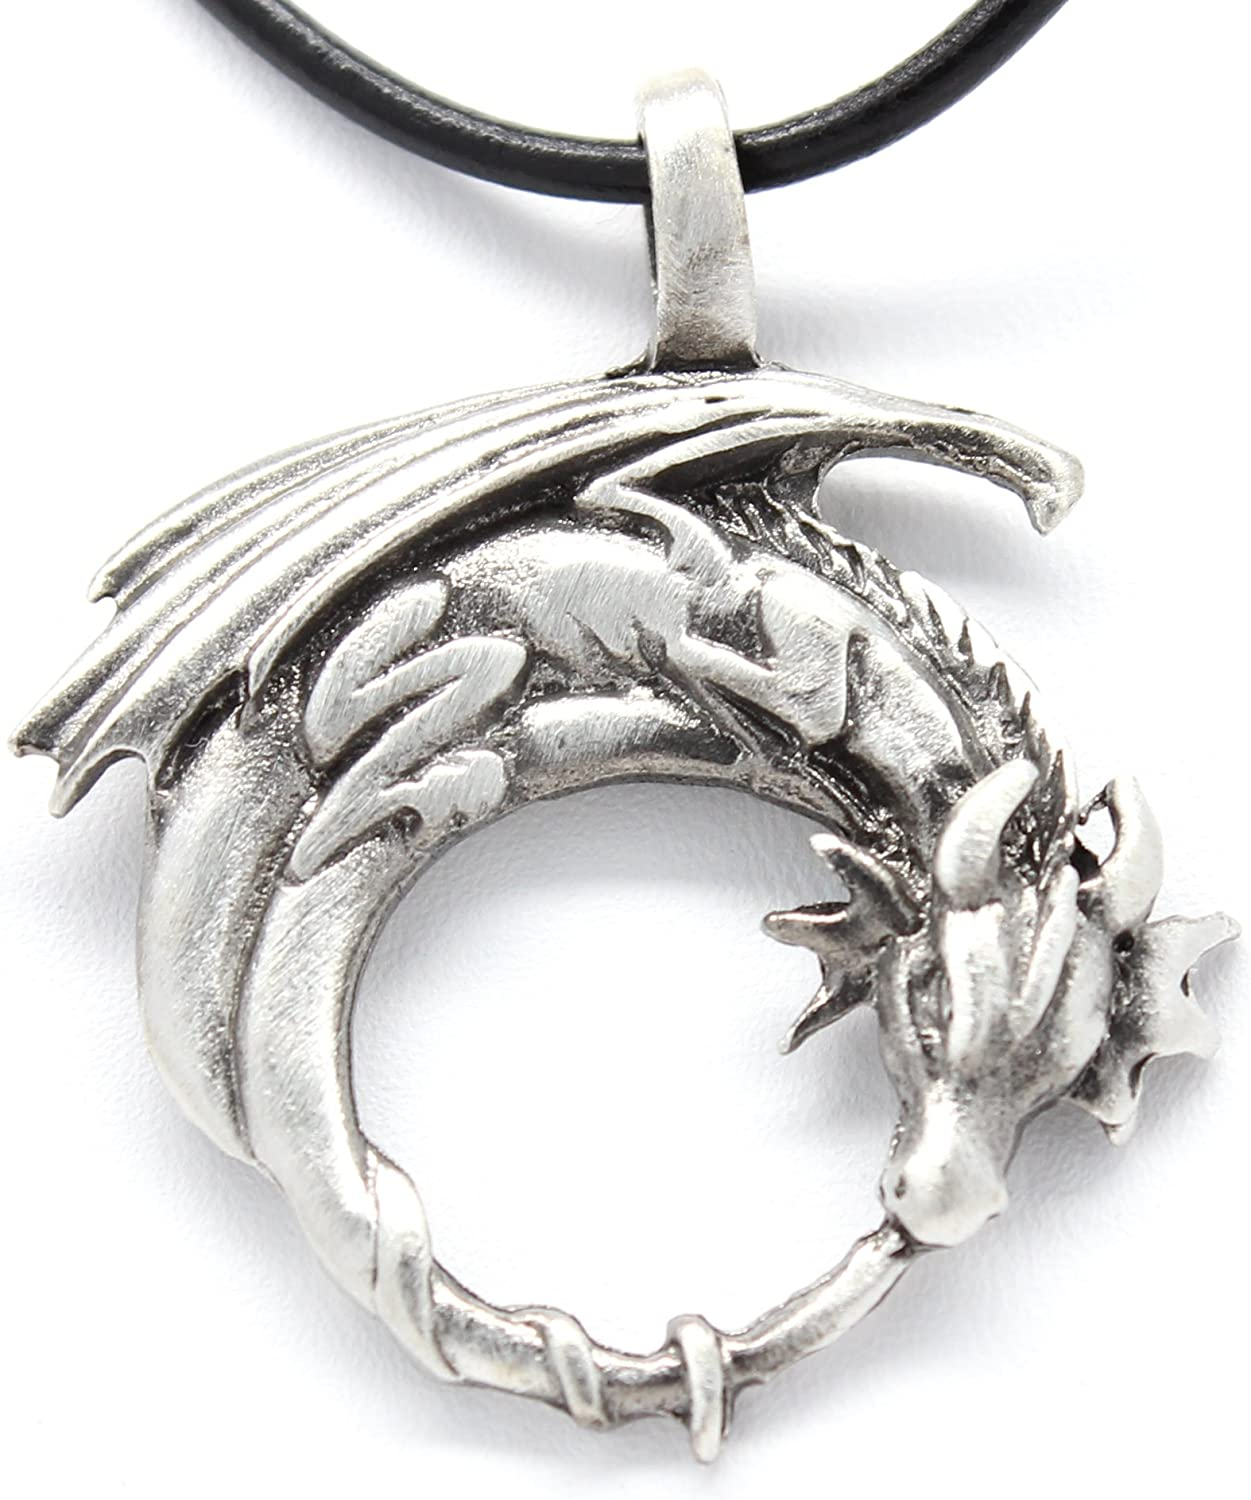 Silver Celtic Star Moon Necklace Gothic Wicca Pagan Pendant Fantasy Crescent